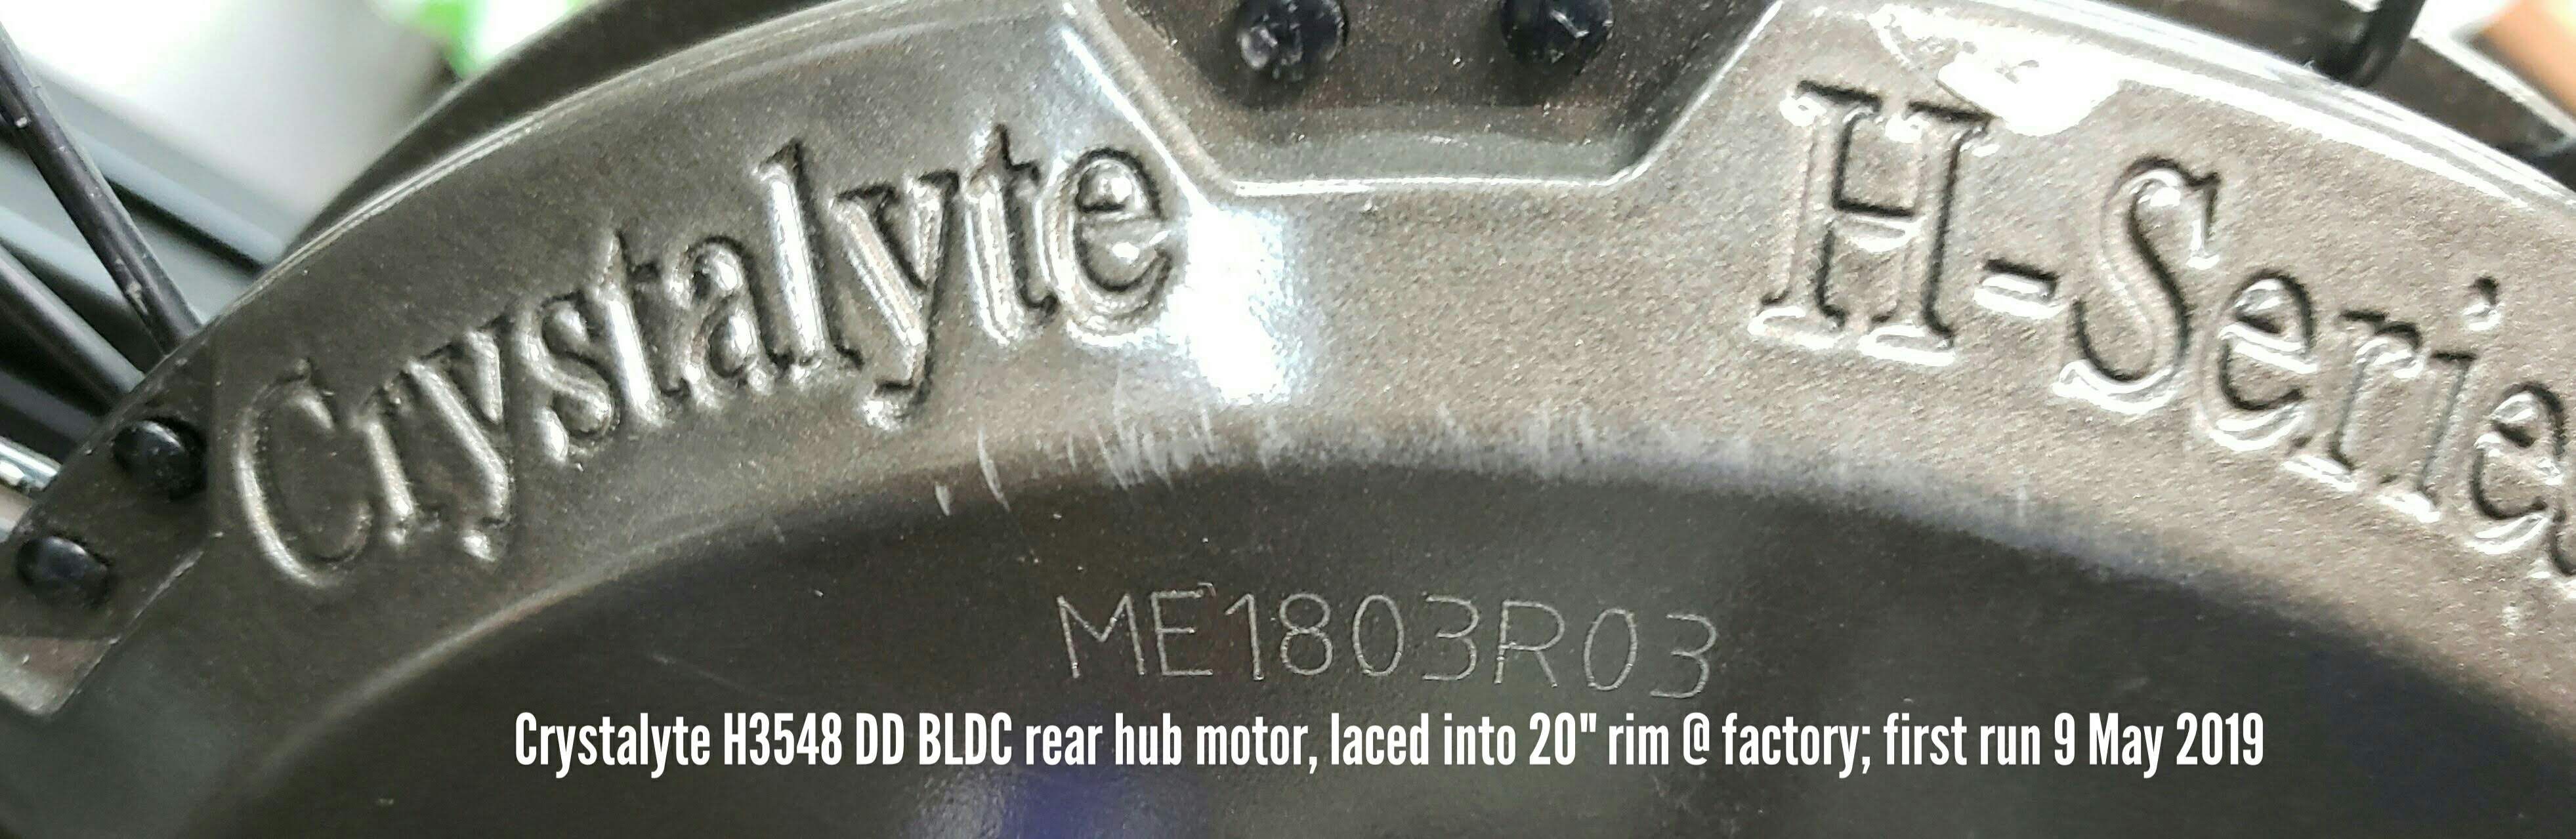 photo of Crystalyte H3548 rear hubmotor's model and serial number